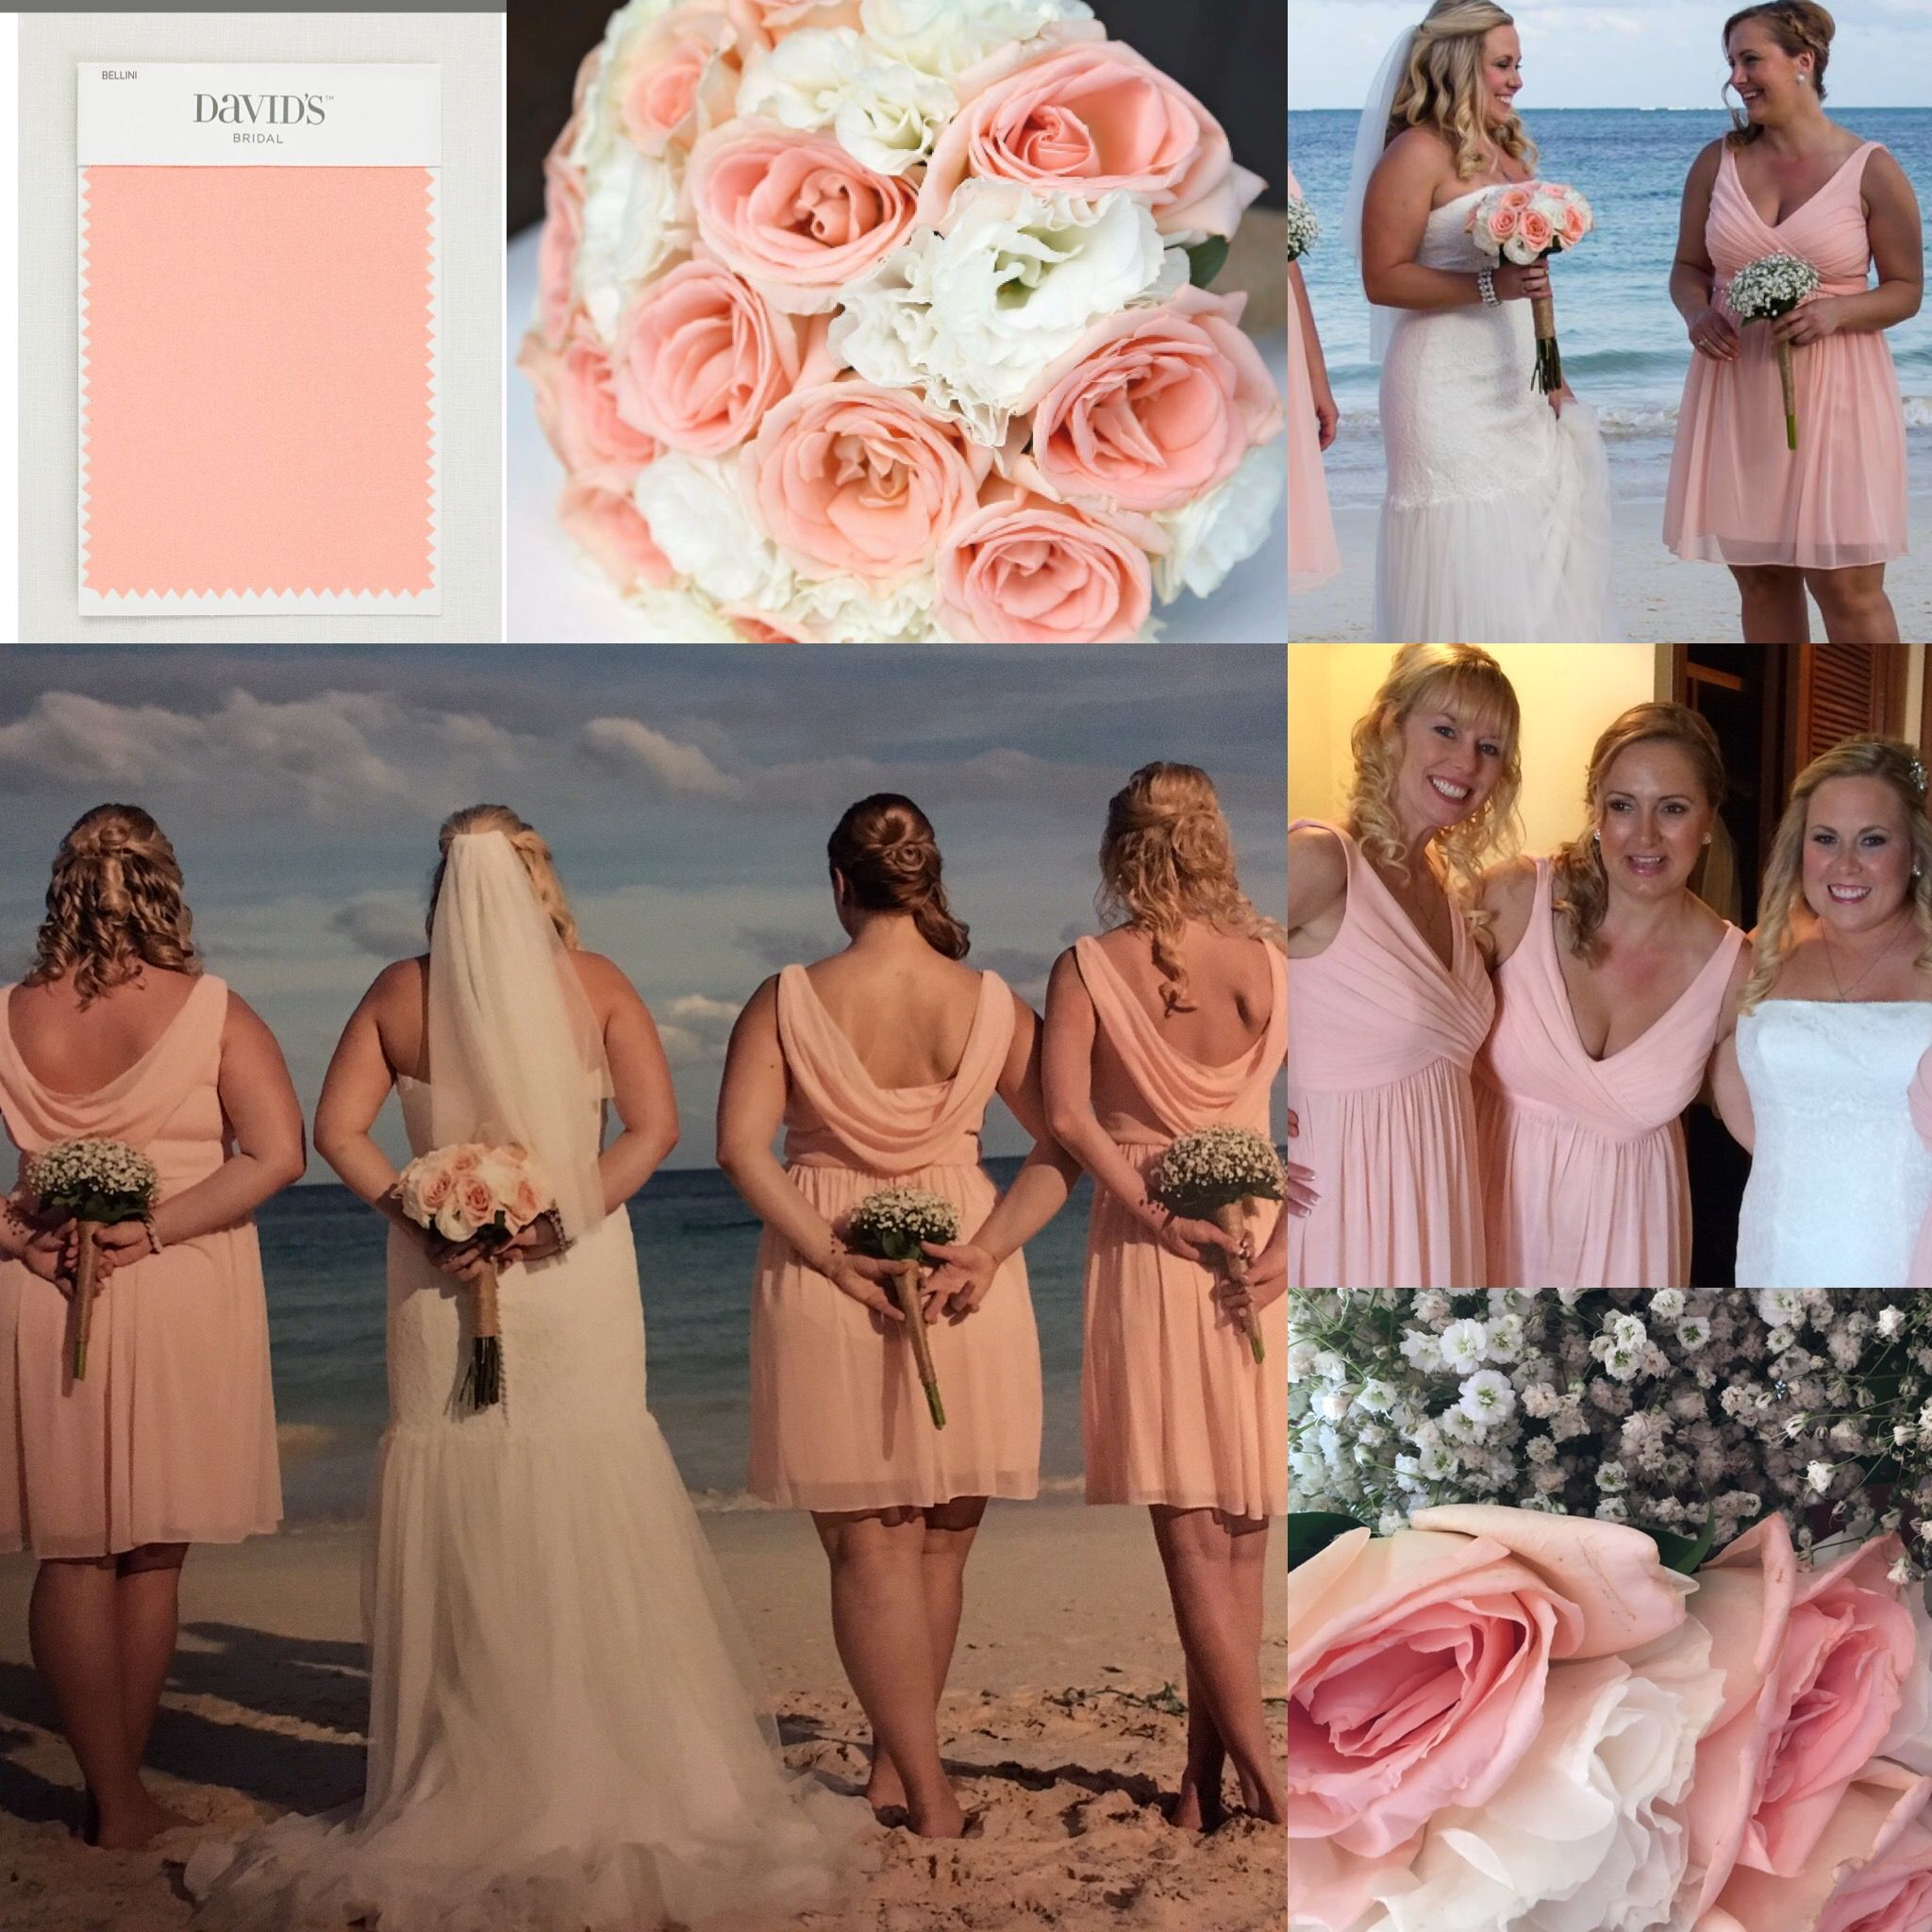 Bridesmaid girls beach color peach bellini babys breath bridesmaid girls beach color peach bellini babys breath bouquet david bridal wedding dressesbeach ombrellifo Image collections